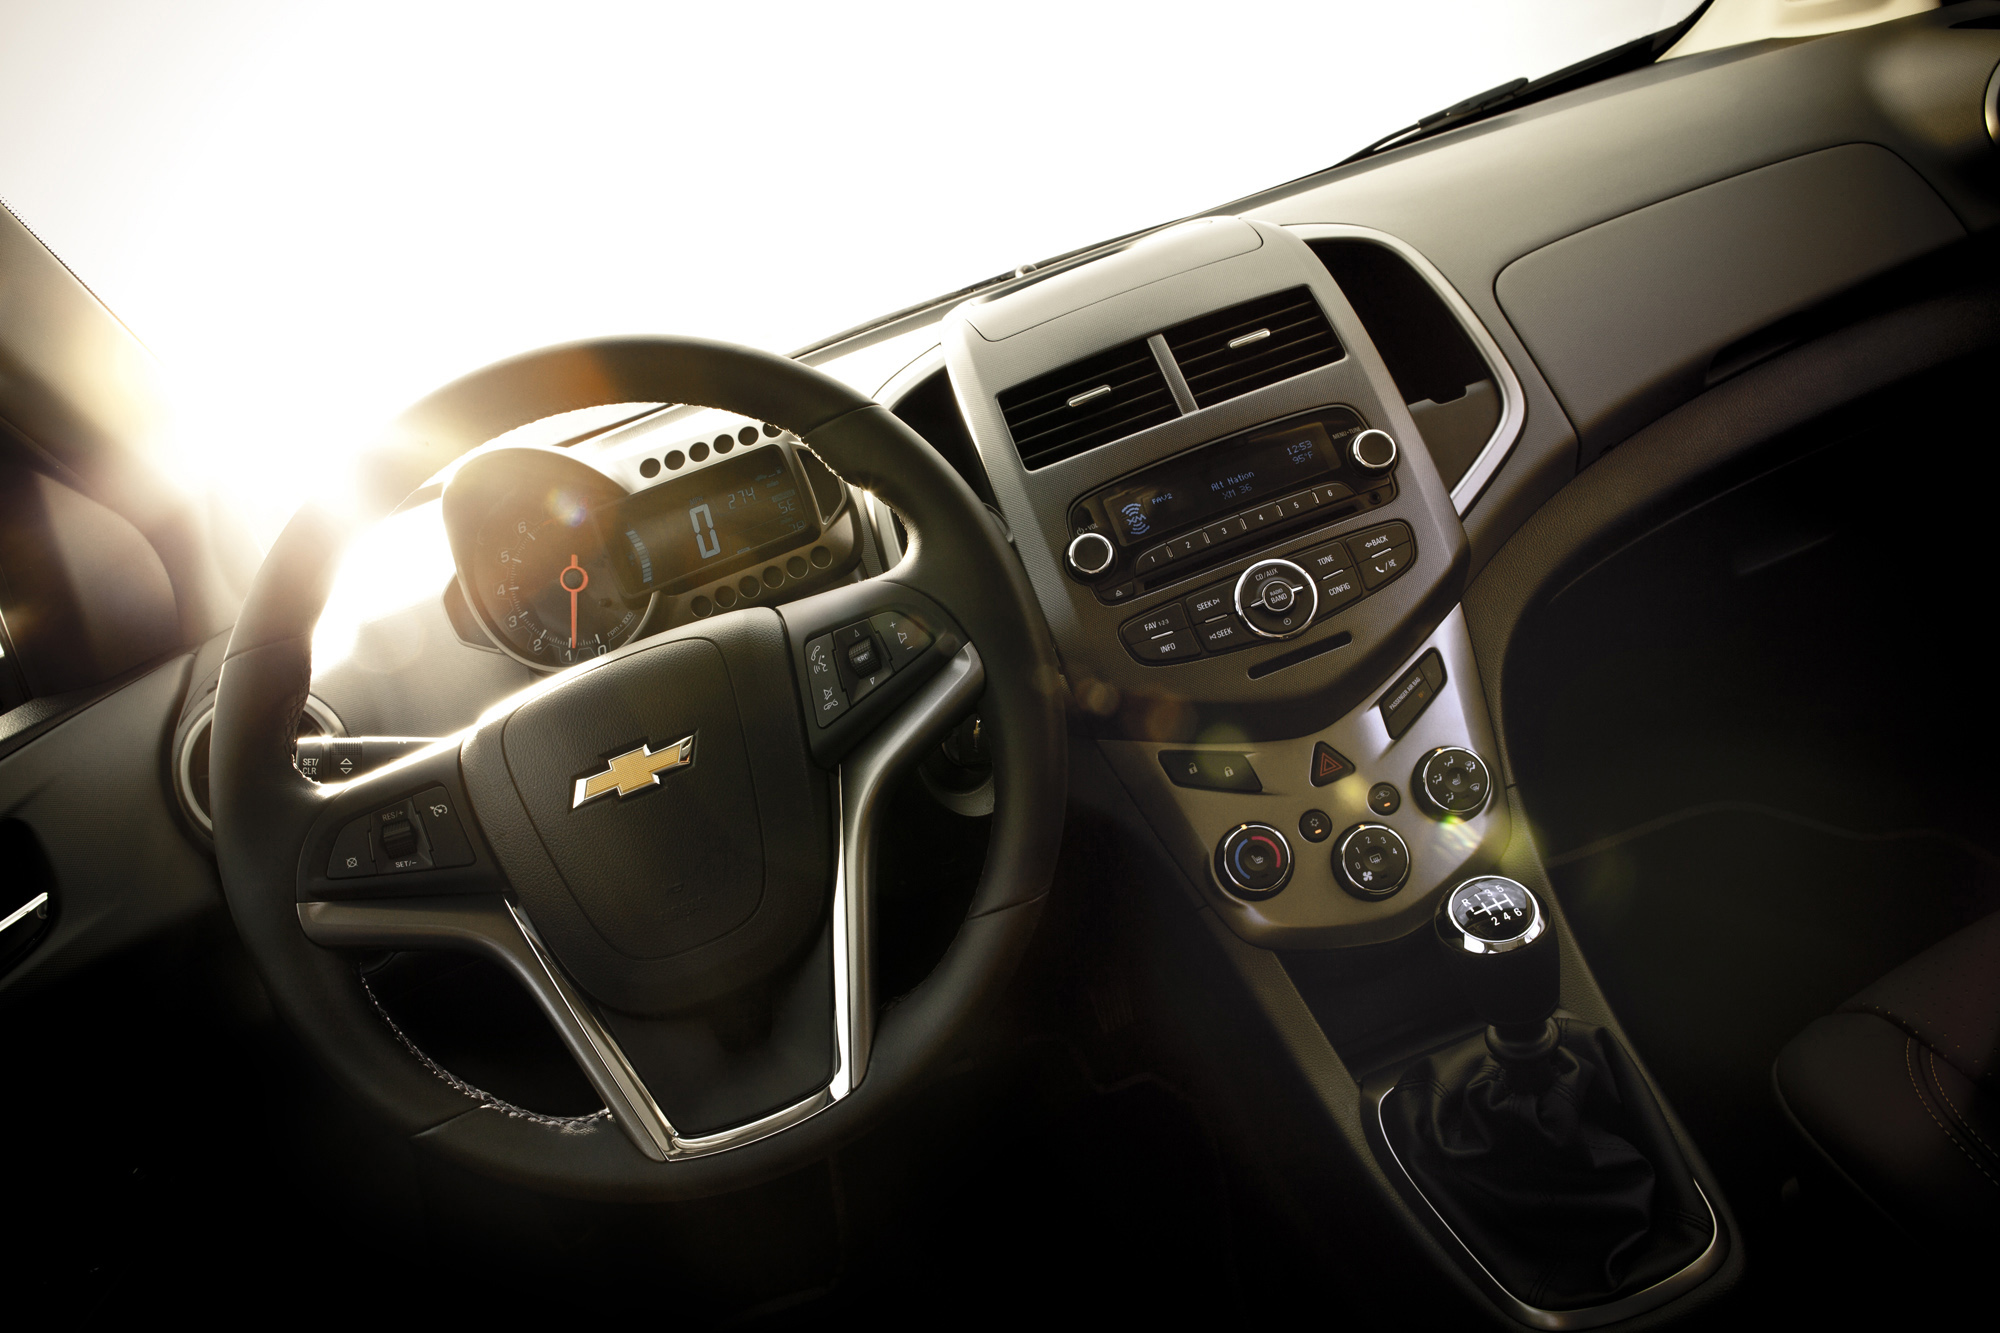 Chevrolet Sonic Owners Manual: Rear Safety Belt Comfort Guides